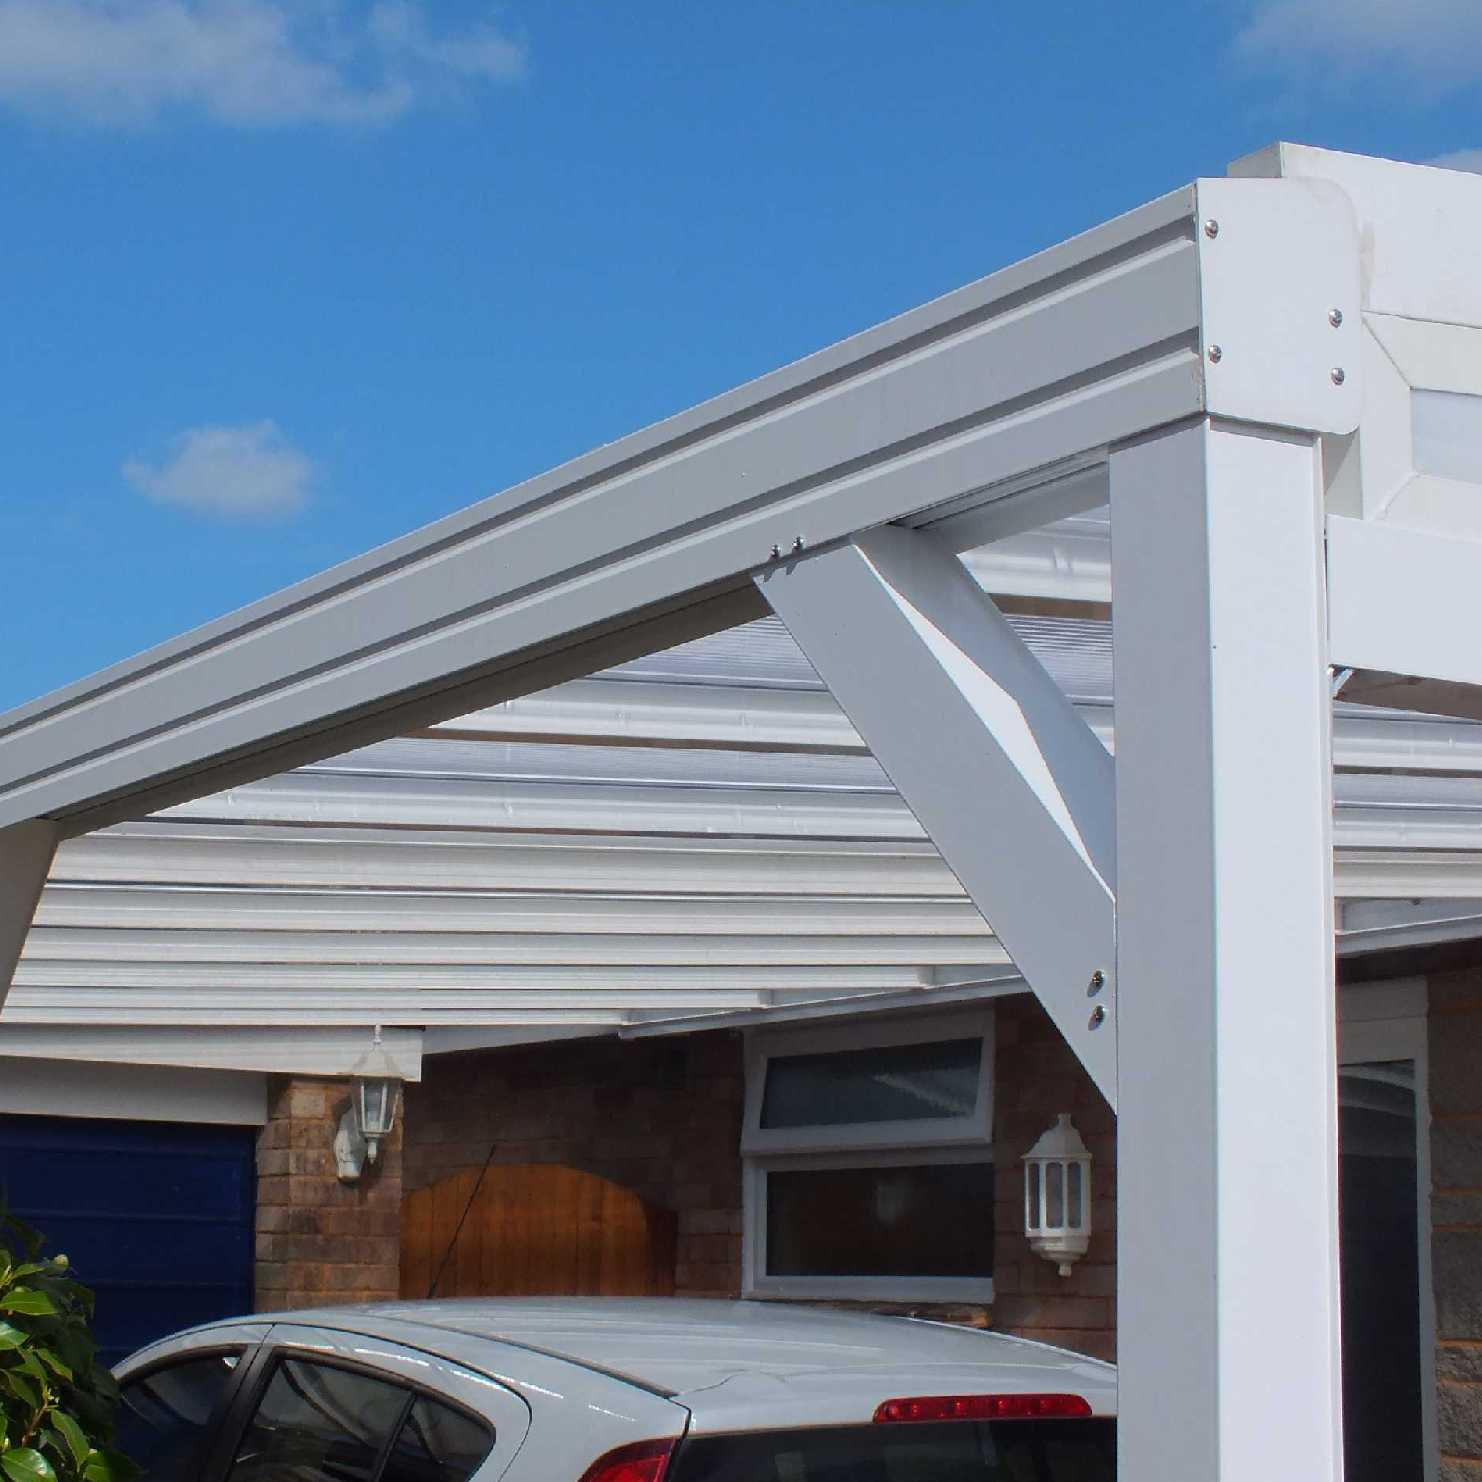 Great deals on Omega Smart White Lean-To Canopy with 16mm Polycarbonate Glazing - 2.8m (W) x 4.0m(P), (2) Supporting Posts